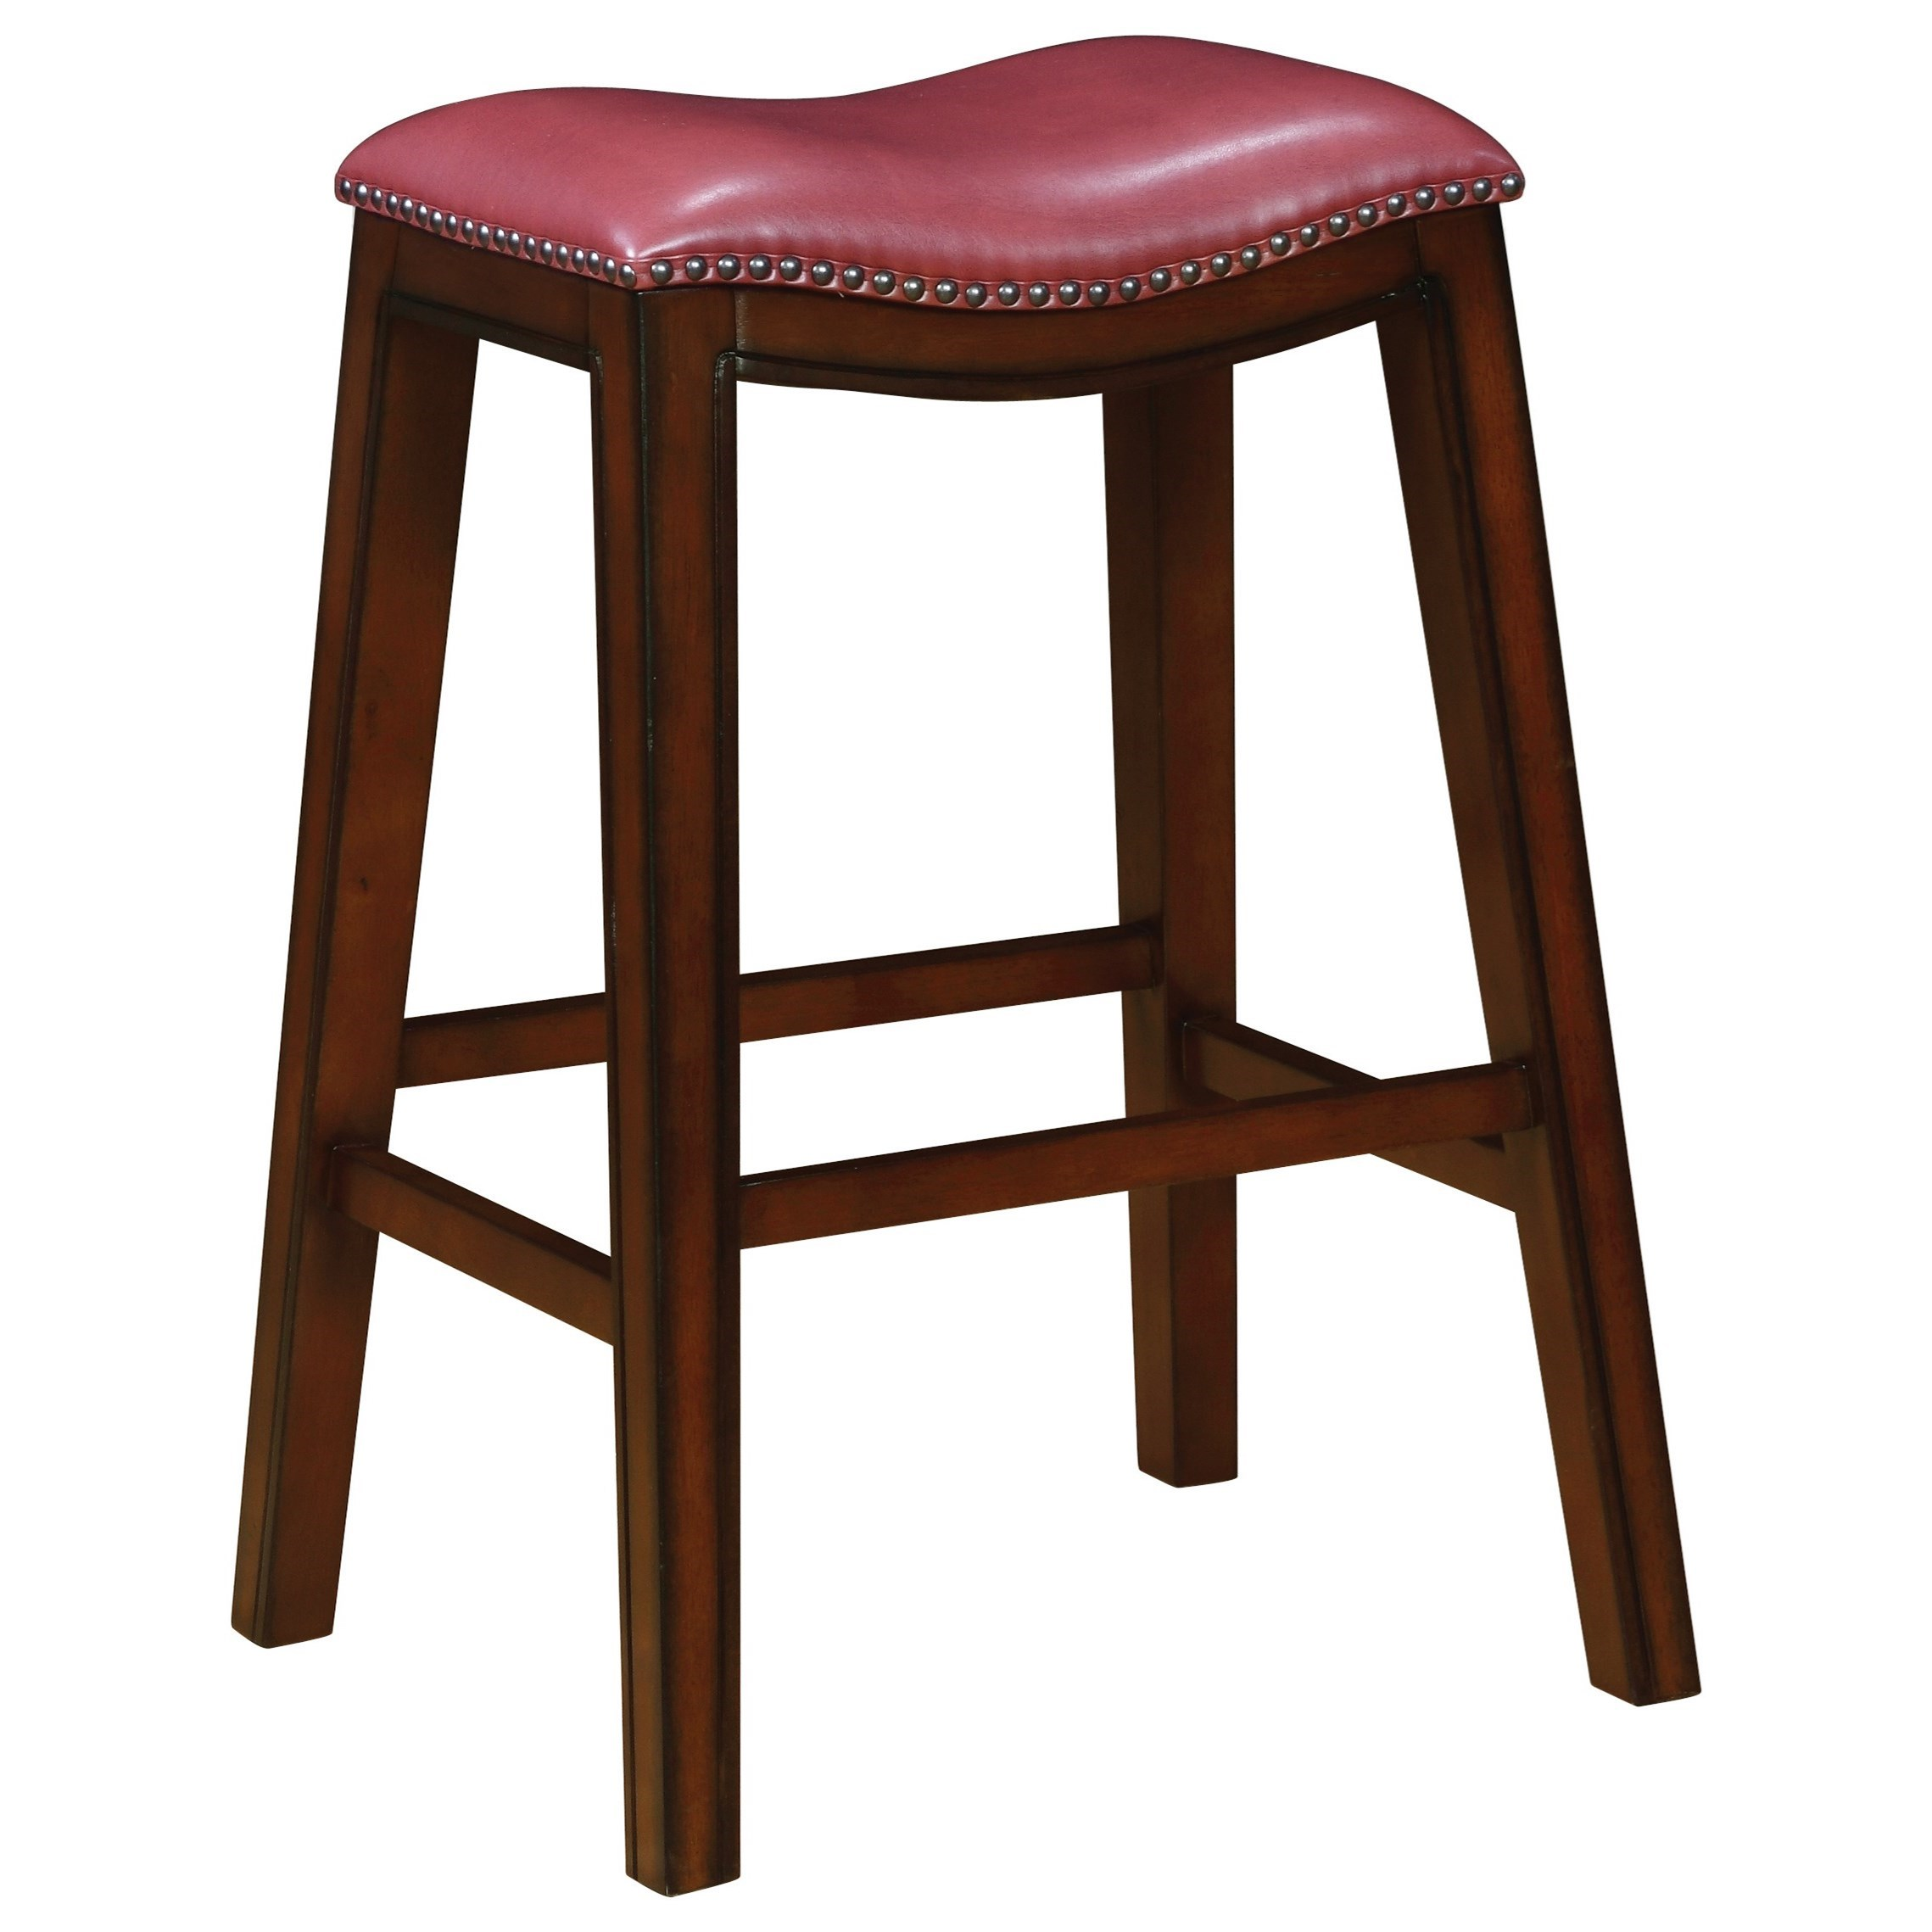 Coaster Dining Chairs and Bar Stools Bar Stool - Item Number: 122268